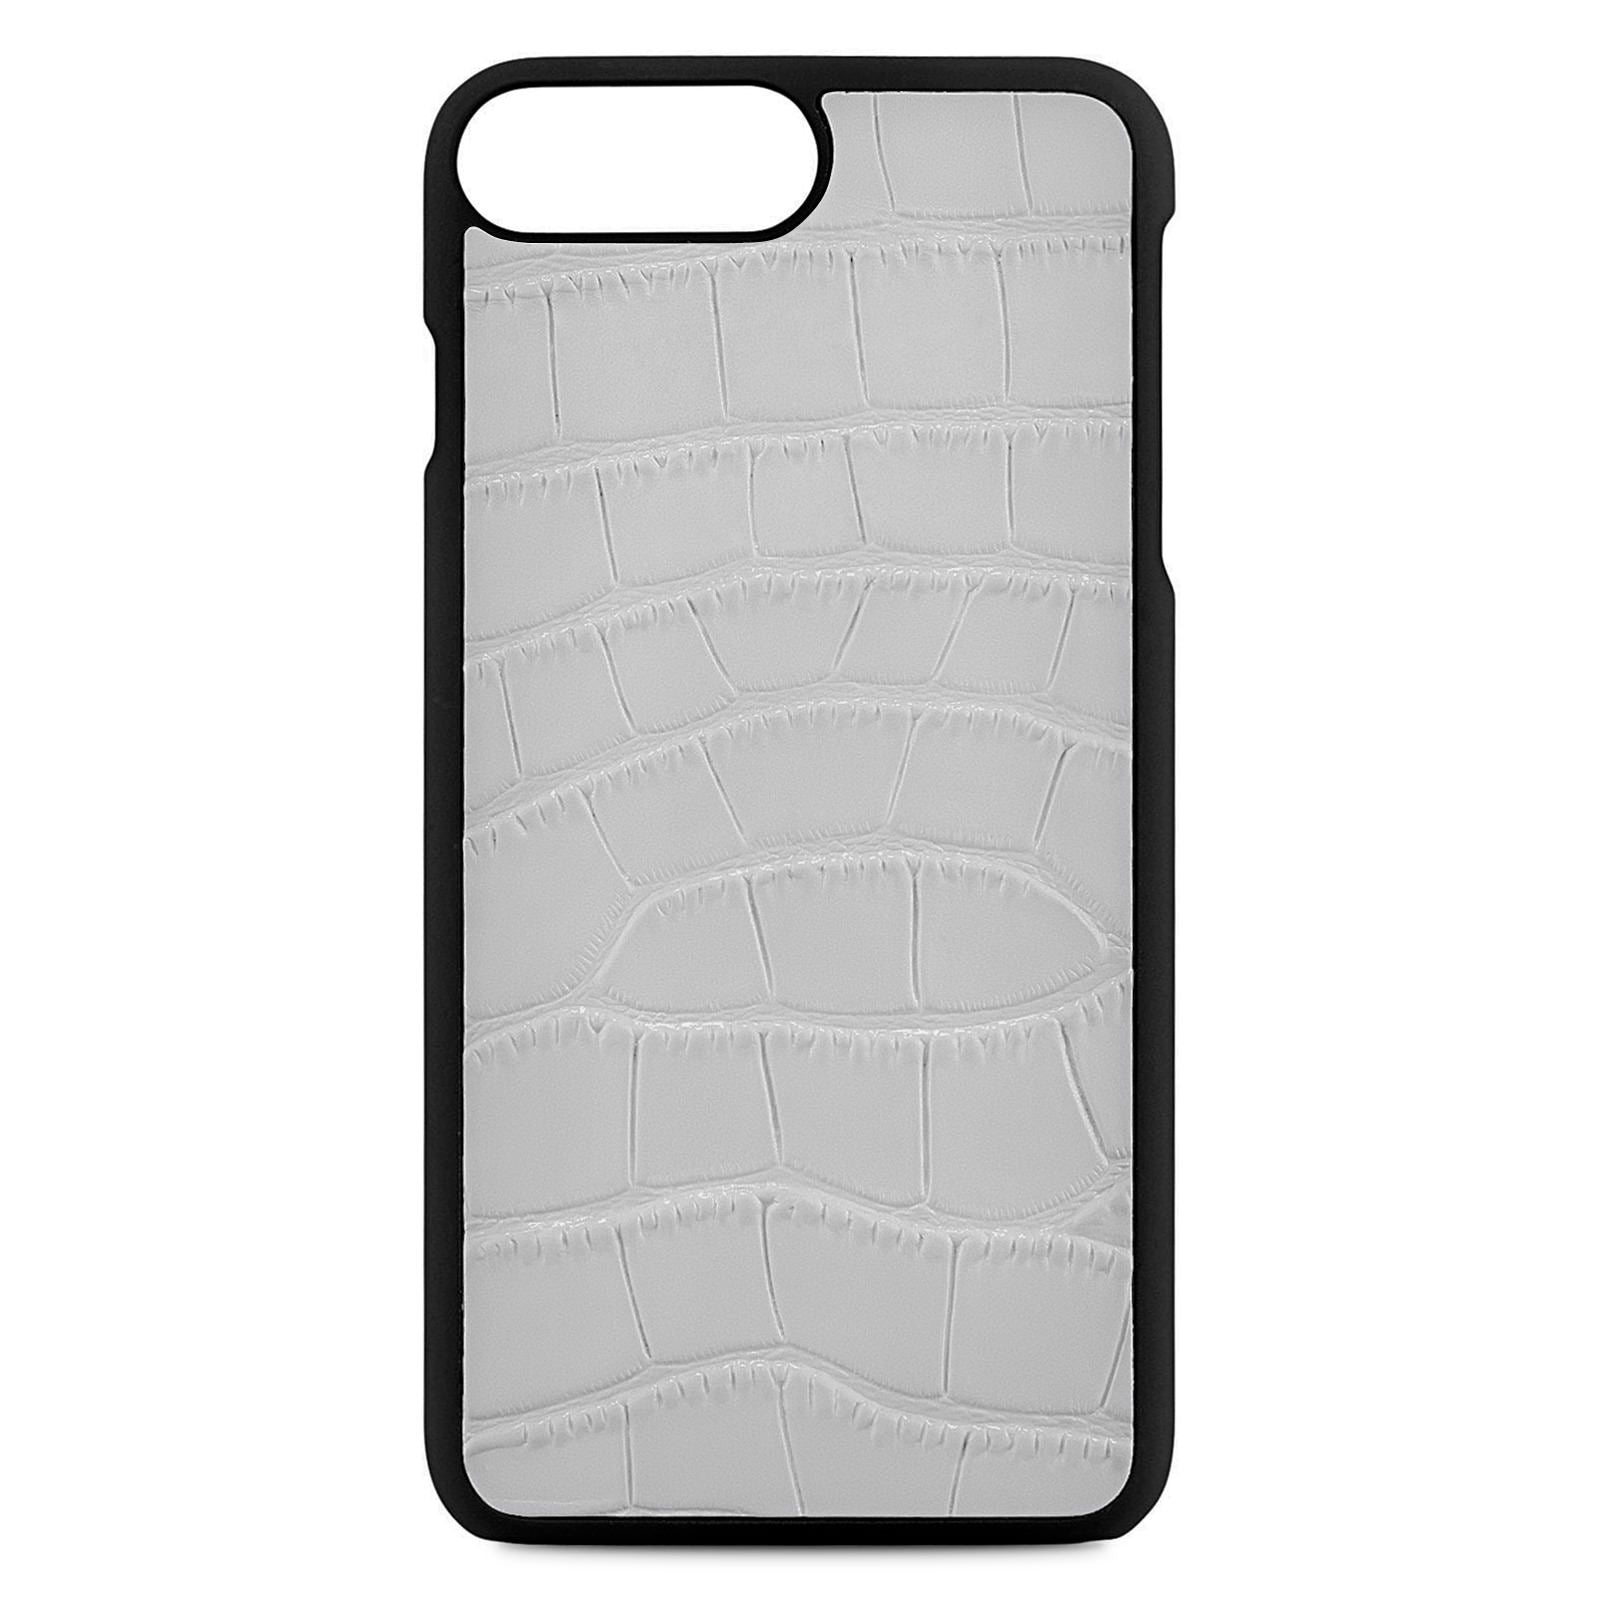 Blank Personalised Grey Croc Leather iPhone 8 Plus Case